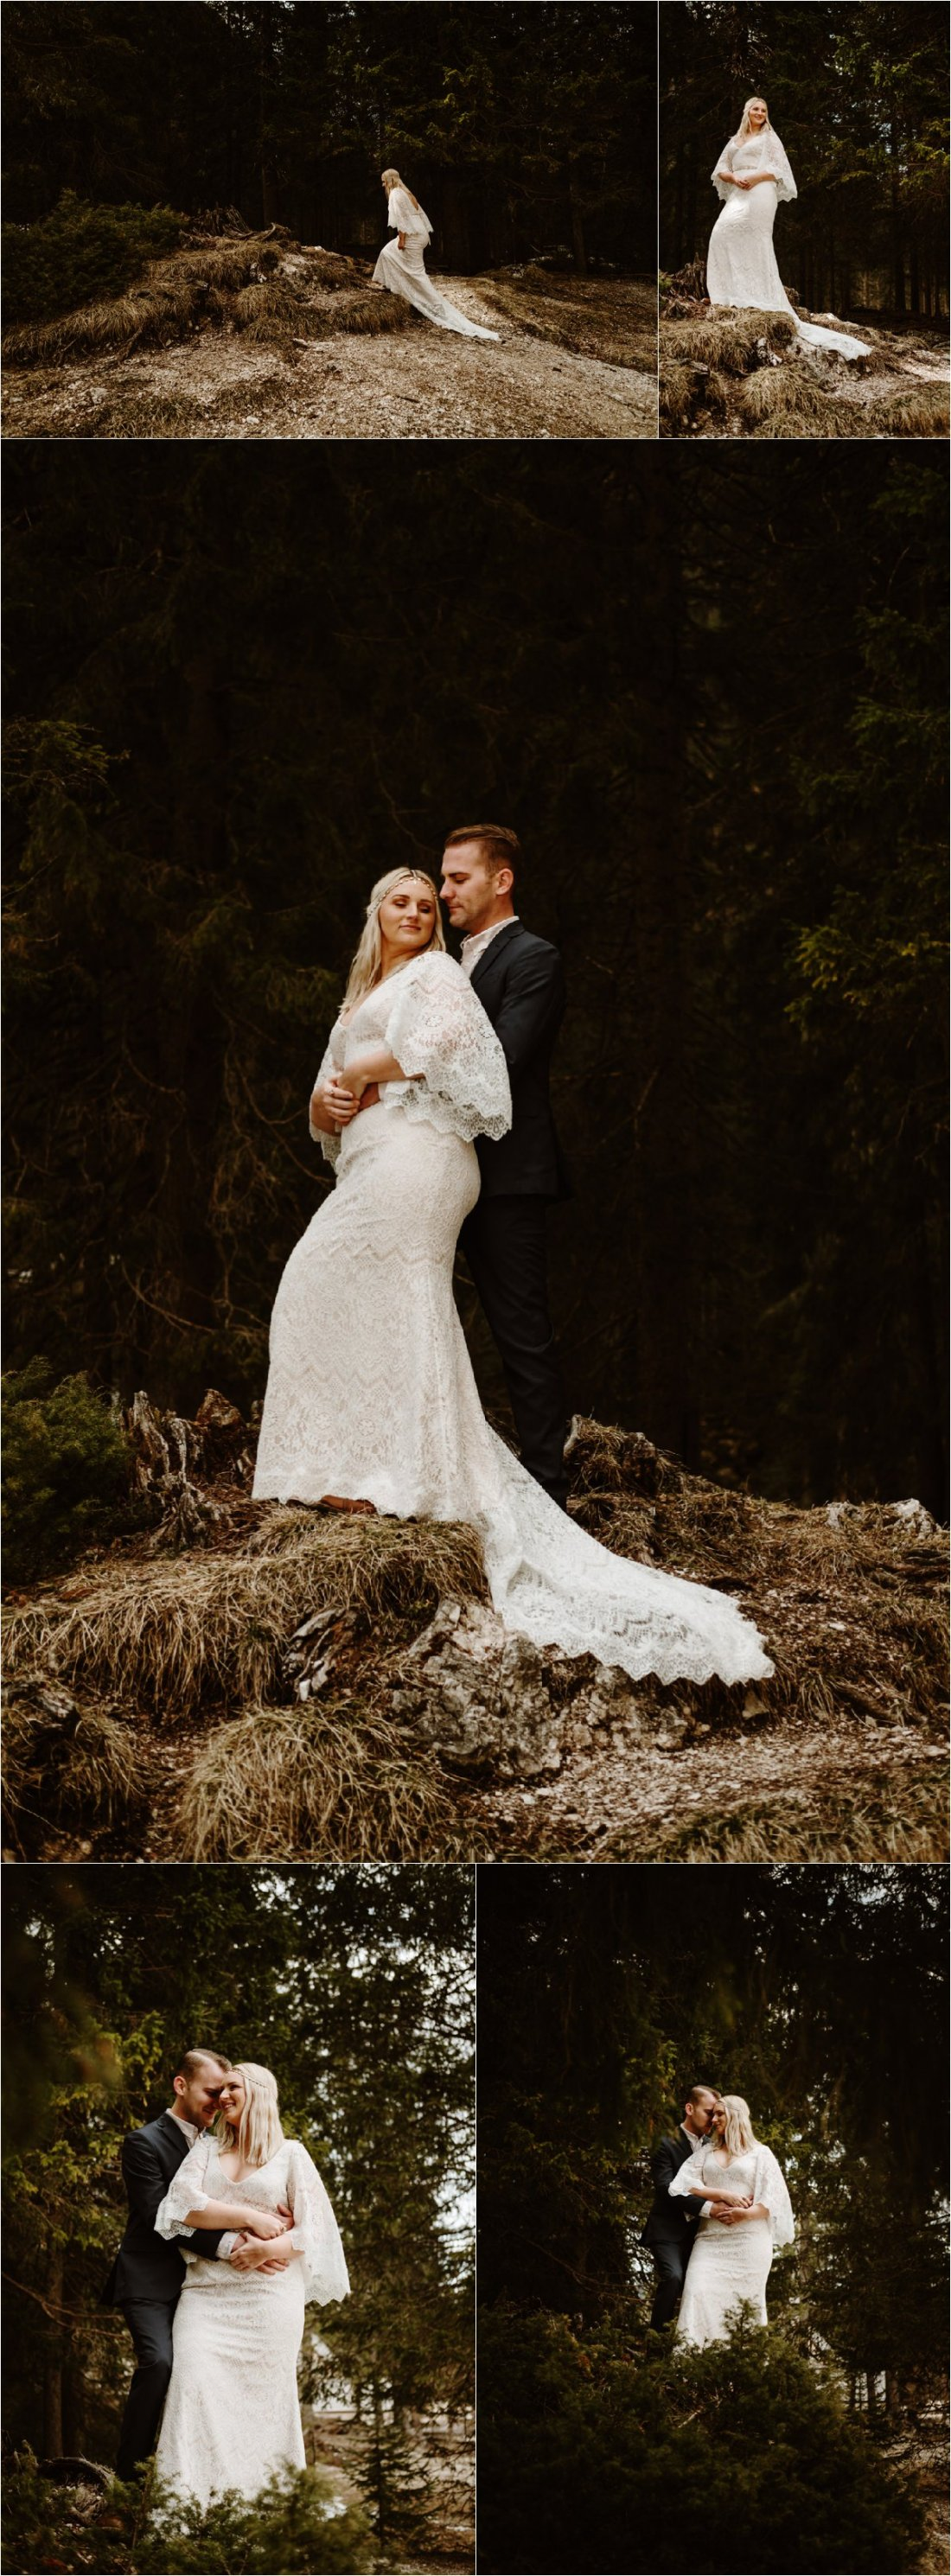 Erika looks like a Game of Thrones bride in her stunning Bohemian vintage lace wedding dress. Photos by Wild Connections Photography